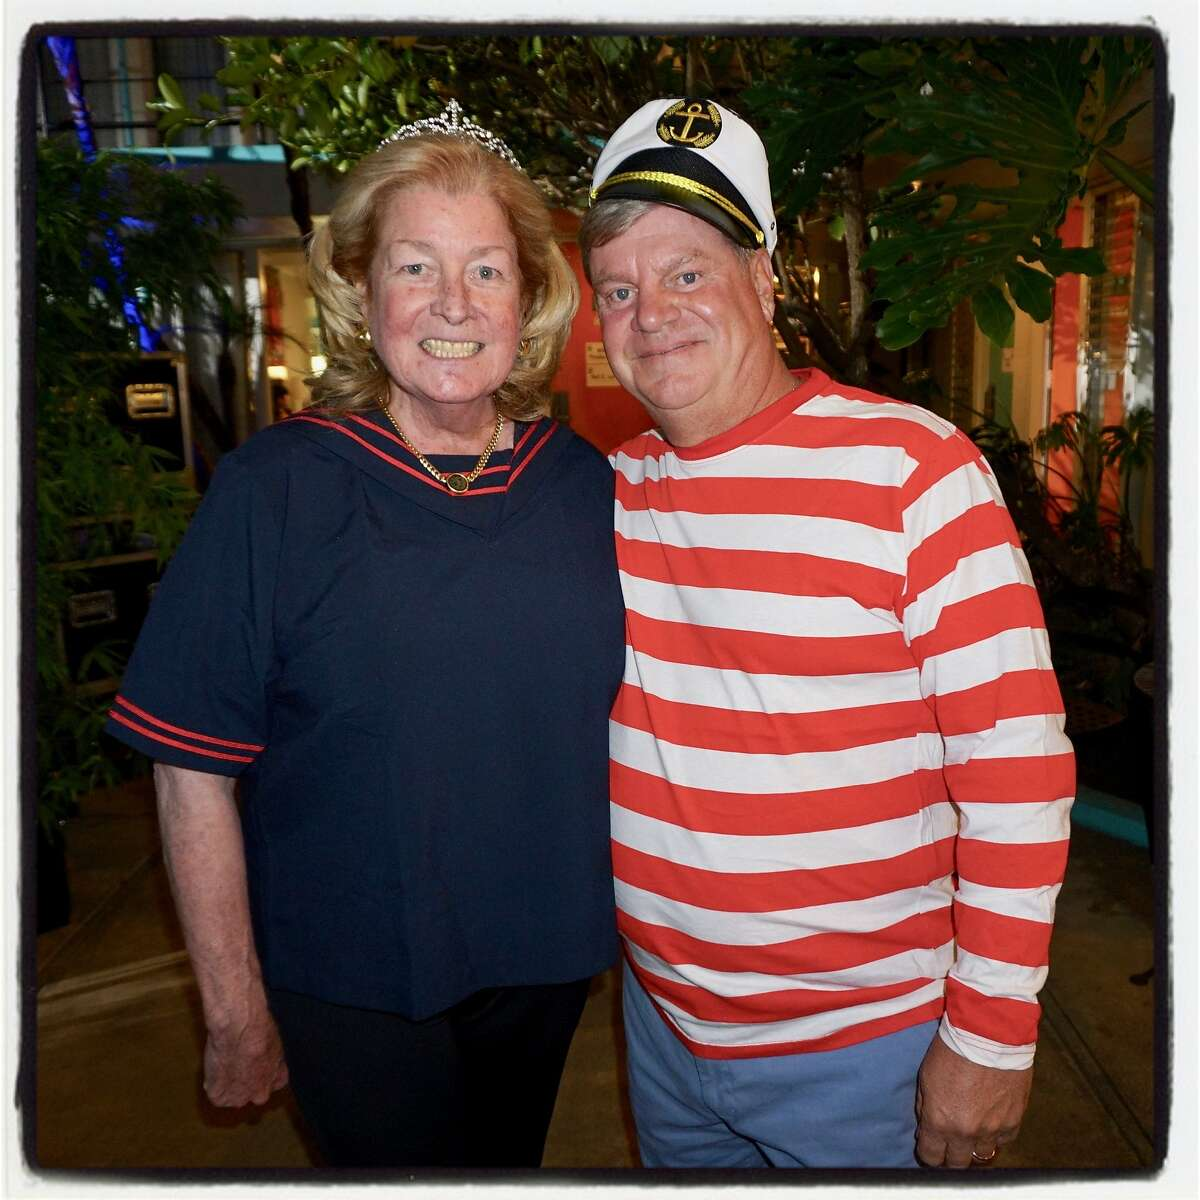 Bonhams chairman Laura King Pfaff and philanthropist Jim Losi celebrated their years of chairing the Pool Toss at the Phoenix Hotel. Oct. 11, 2017.